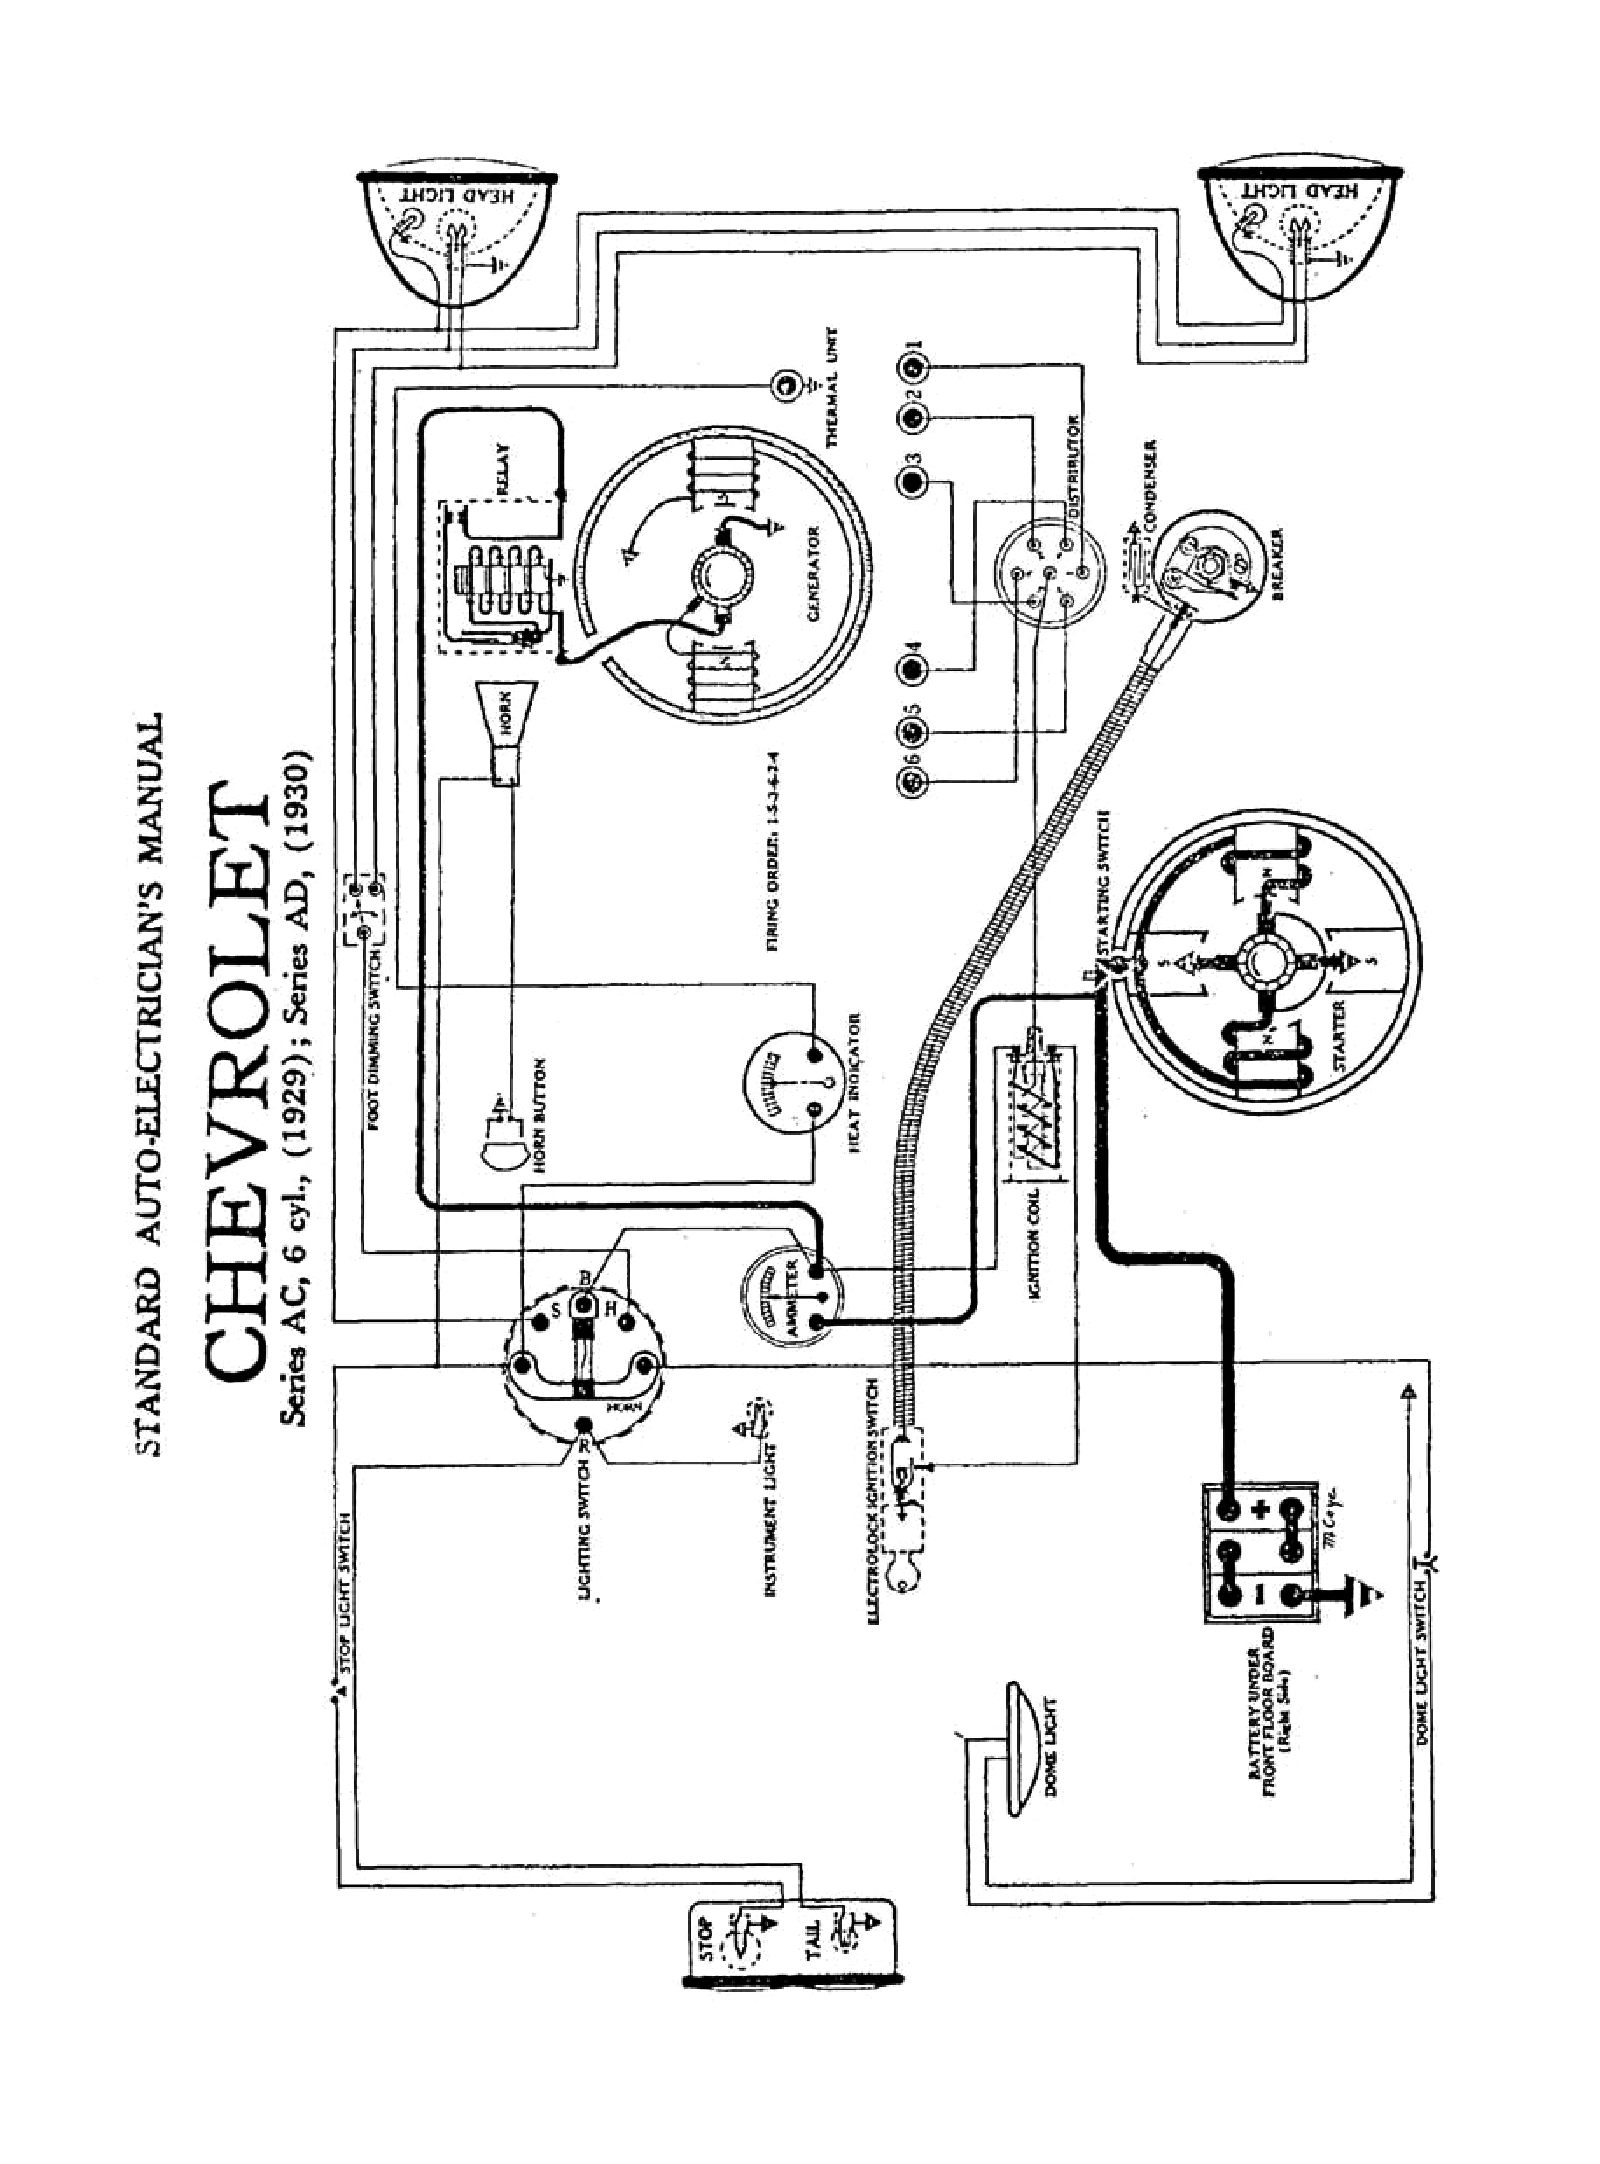 1949 Ford F1 Wiring Harness Wire Center Diagram Chevy Truck On Get Free Image About Rh 107 191 48 154 1950 1947